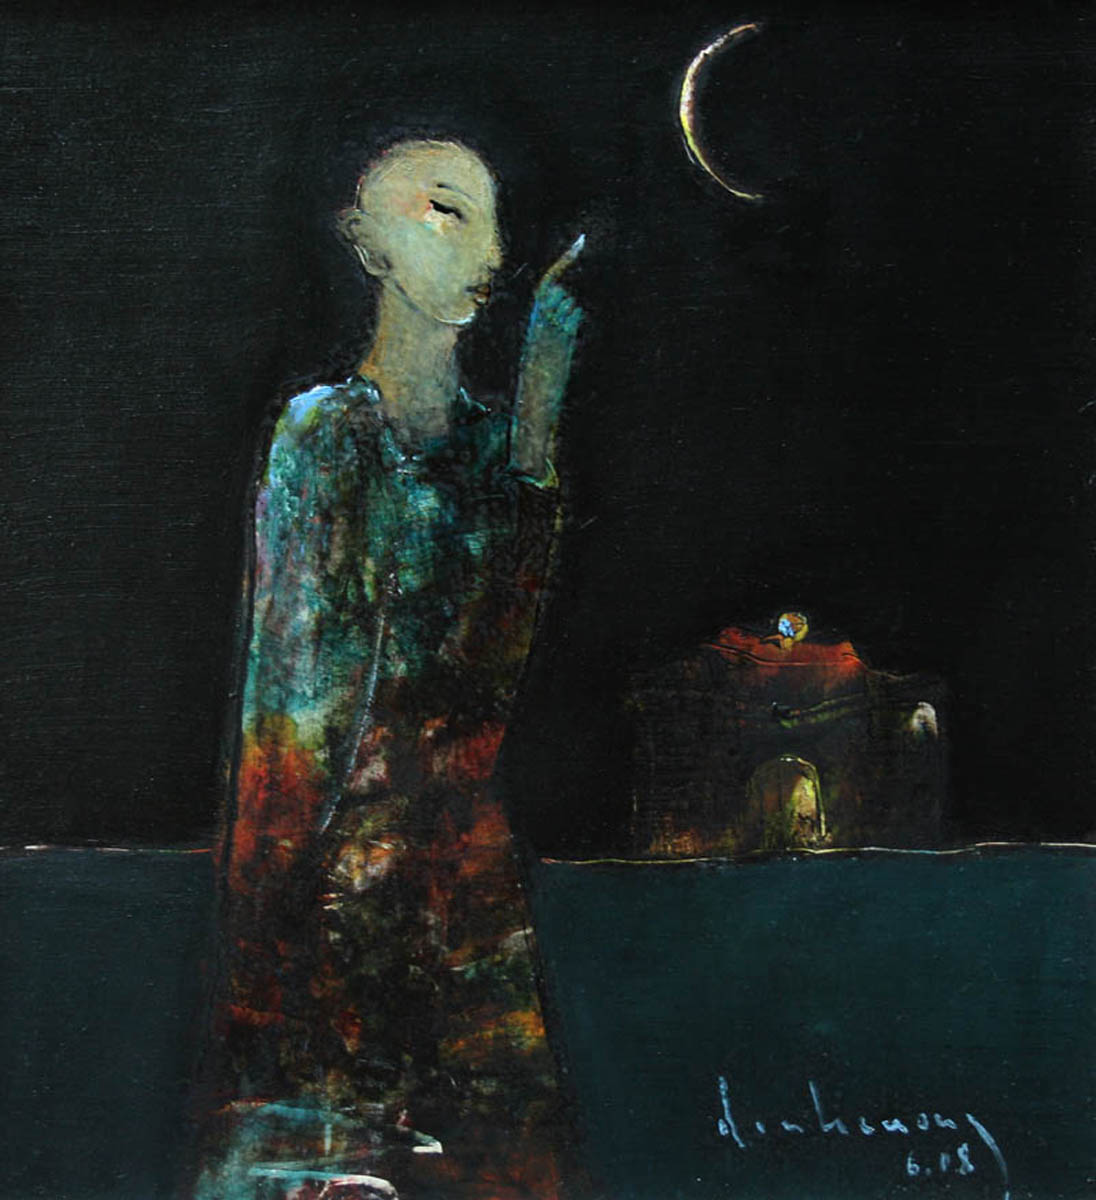 Buddha pointing at the moon